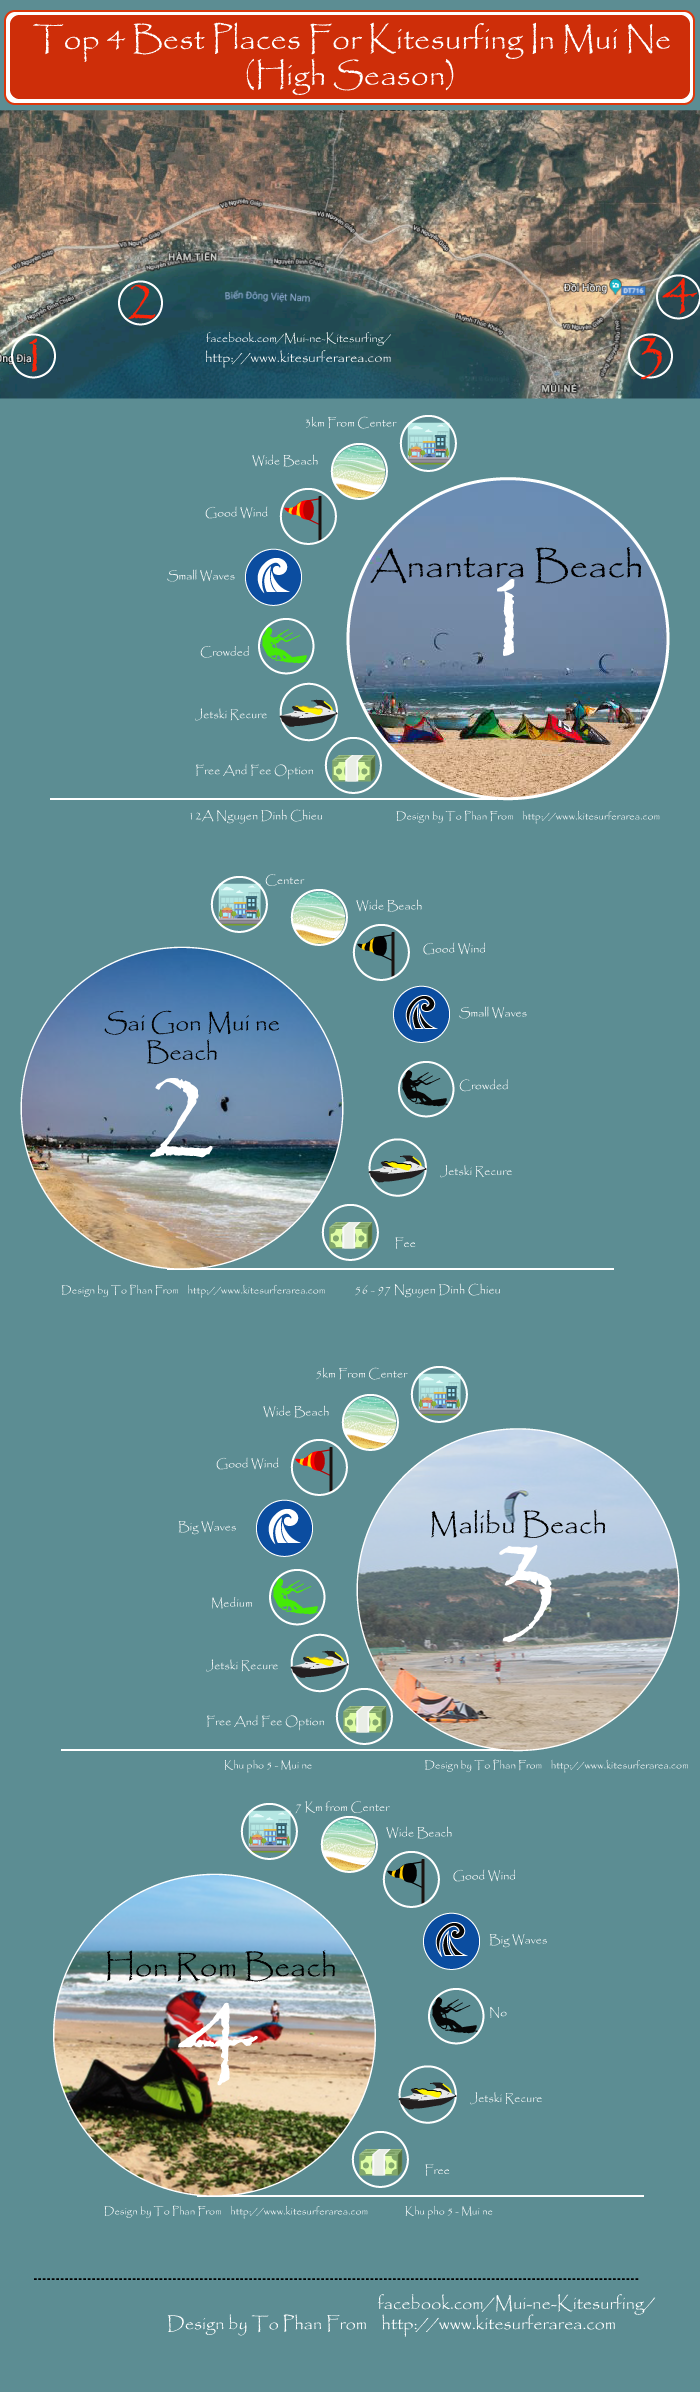 [Infographic] Top 4 Best Places for Kitesurfing in Mui ne (High Season)